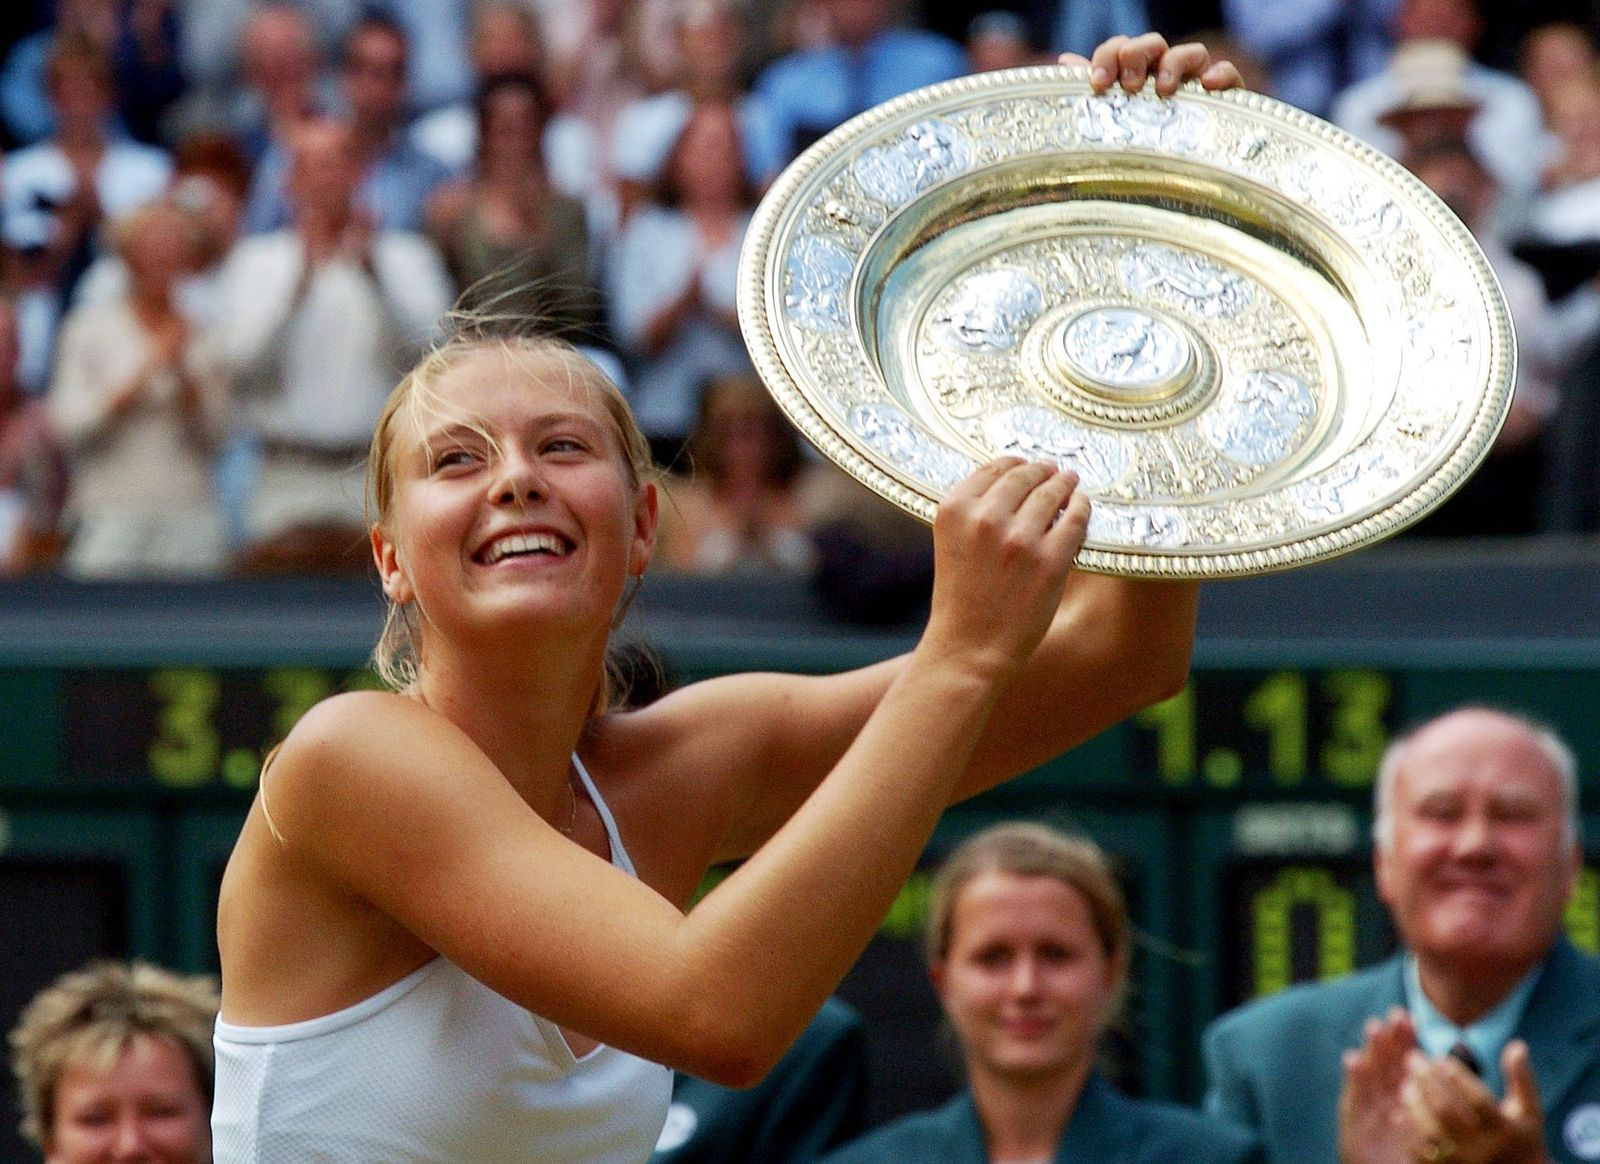 Maria Sharapova, Wimbledon, United Kingdom - 03 Jul 2004